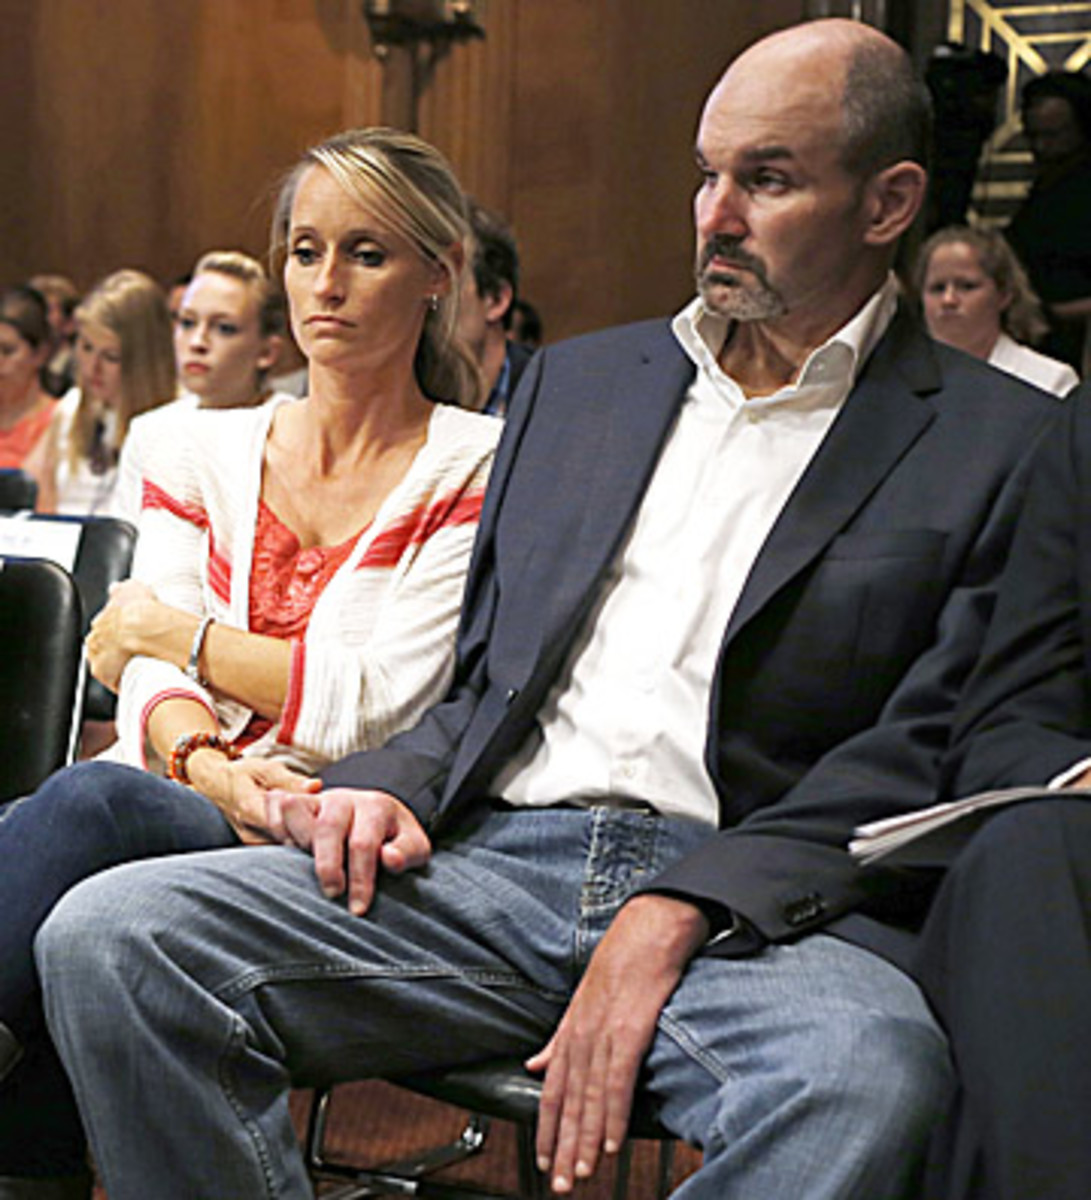 The compensation of Kevin Turner, a name plaintiff who suffers from ALS, will not change. (Charles Dharapak/AP)